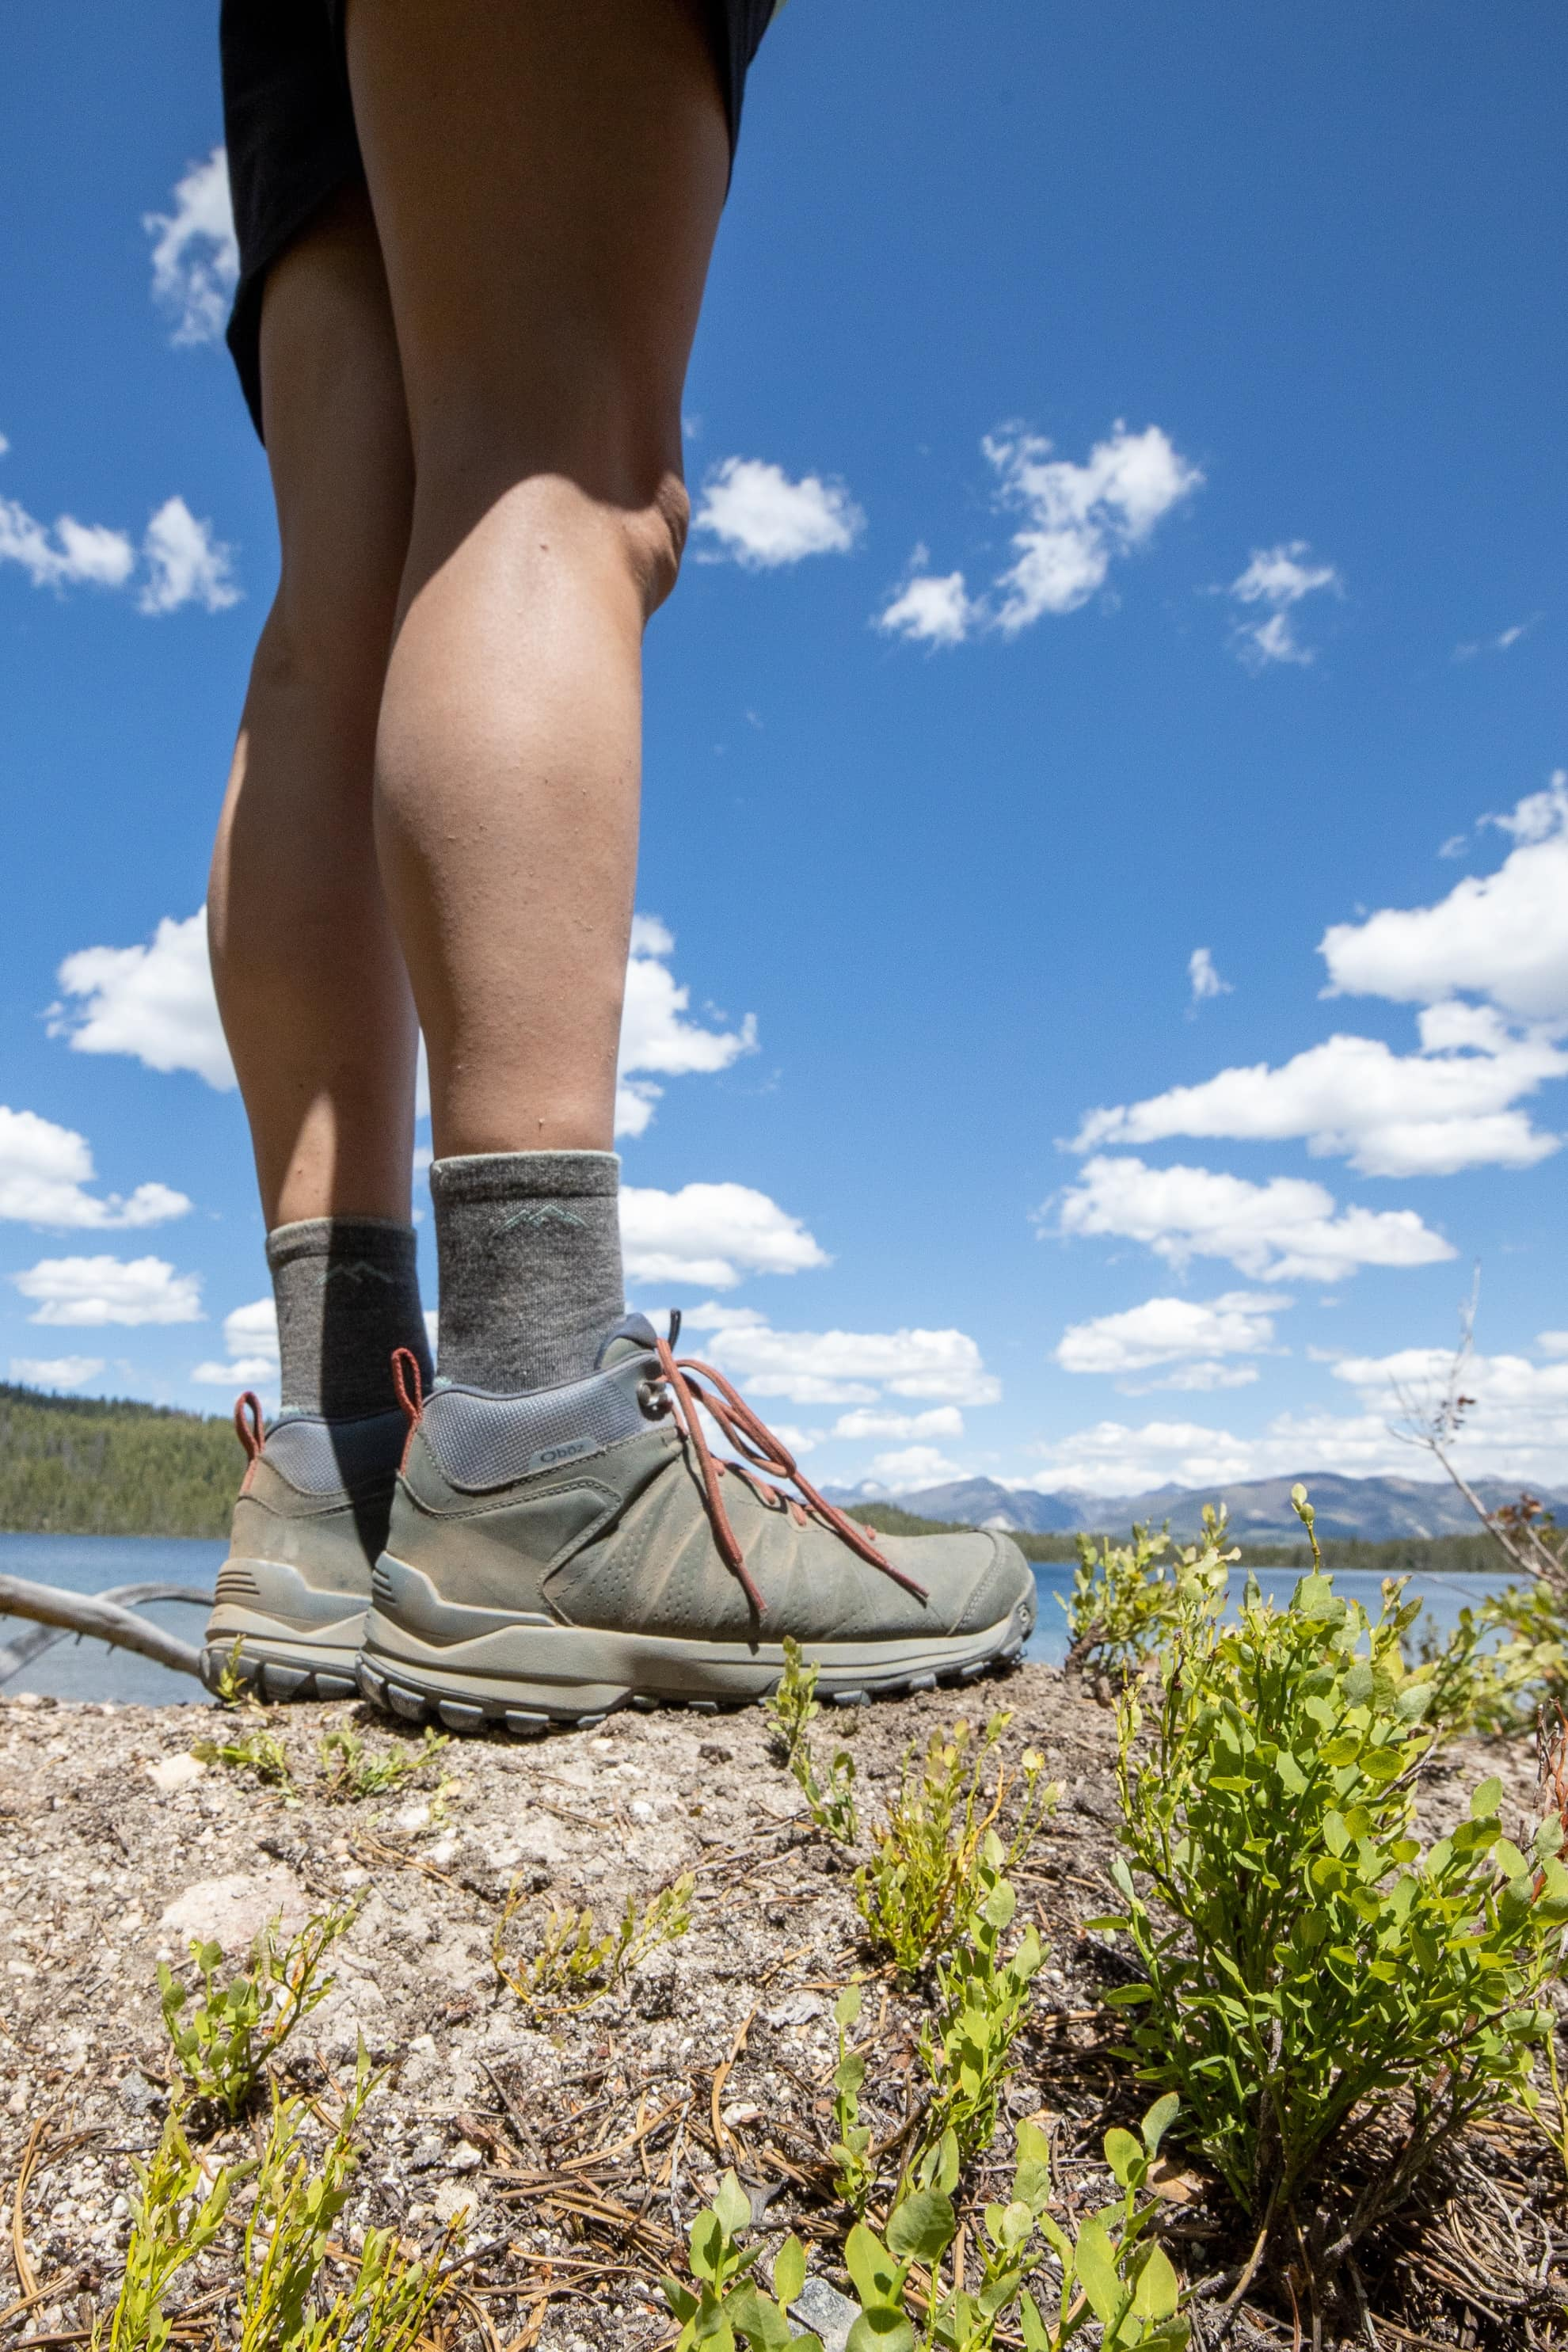 The Oboz Sypes hiking boot is a lightweight, versatile, and comfortable trail shoe with ankle support and supportive, eco-friendly insoles.